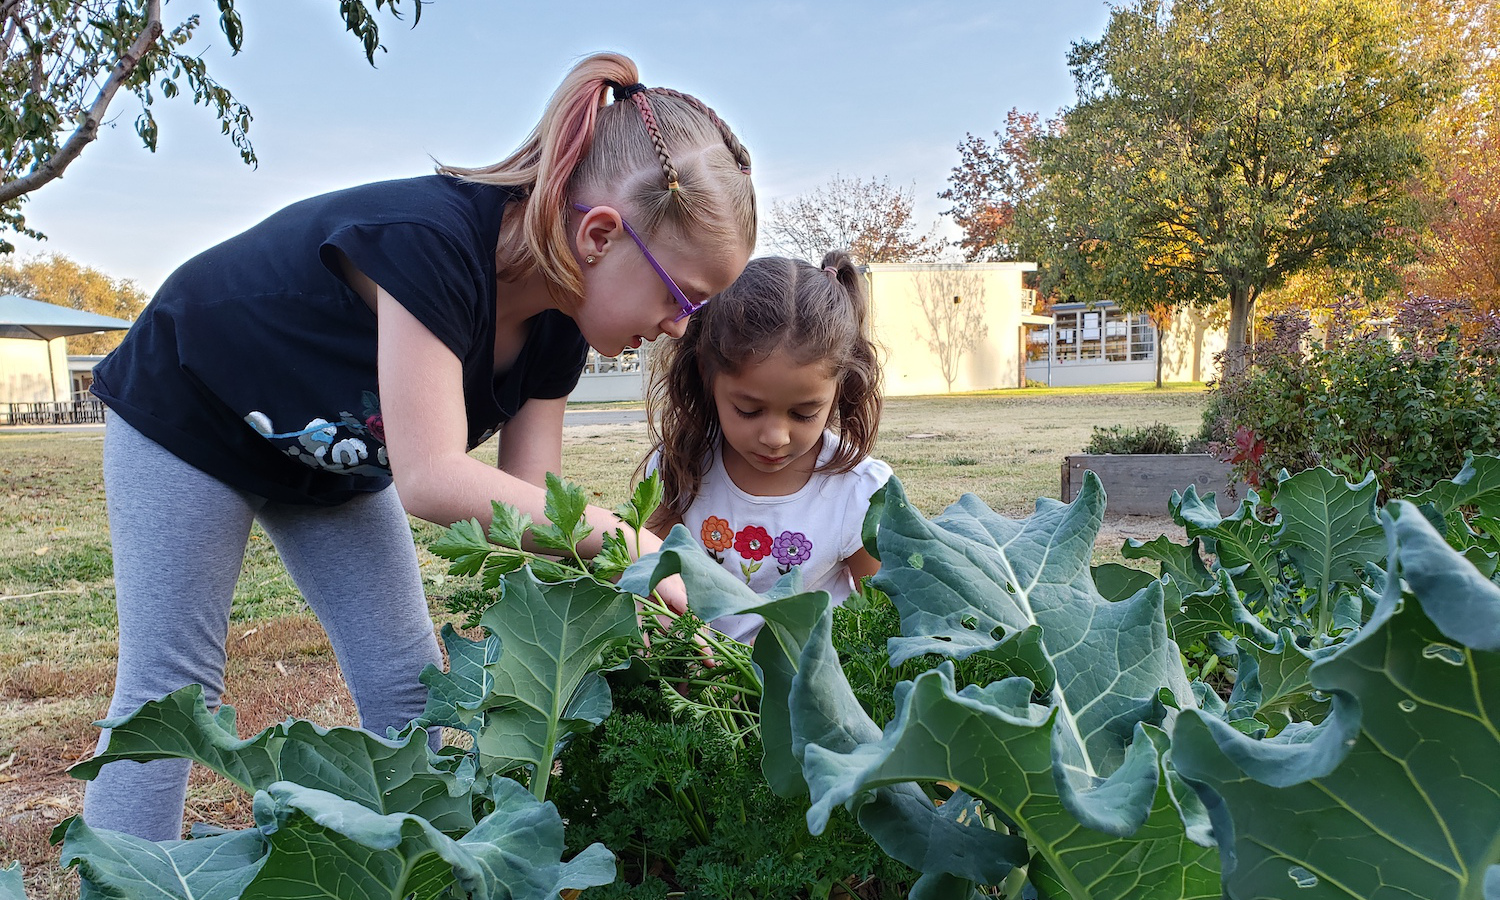 The Food Literacy Center will offer students hands-on cooking lessons from its new green classroom and garden in Sacramento.